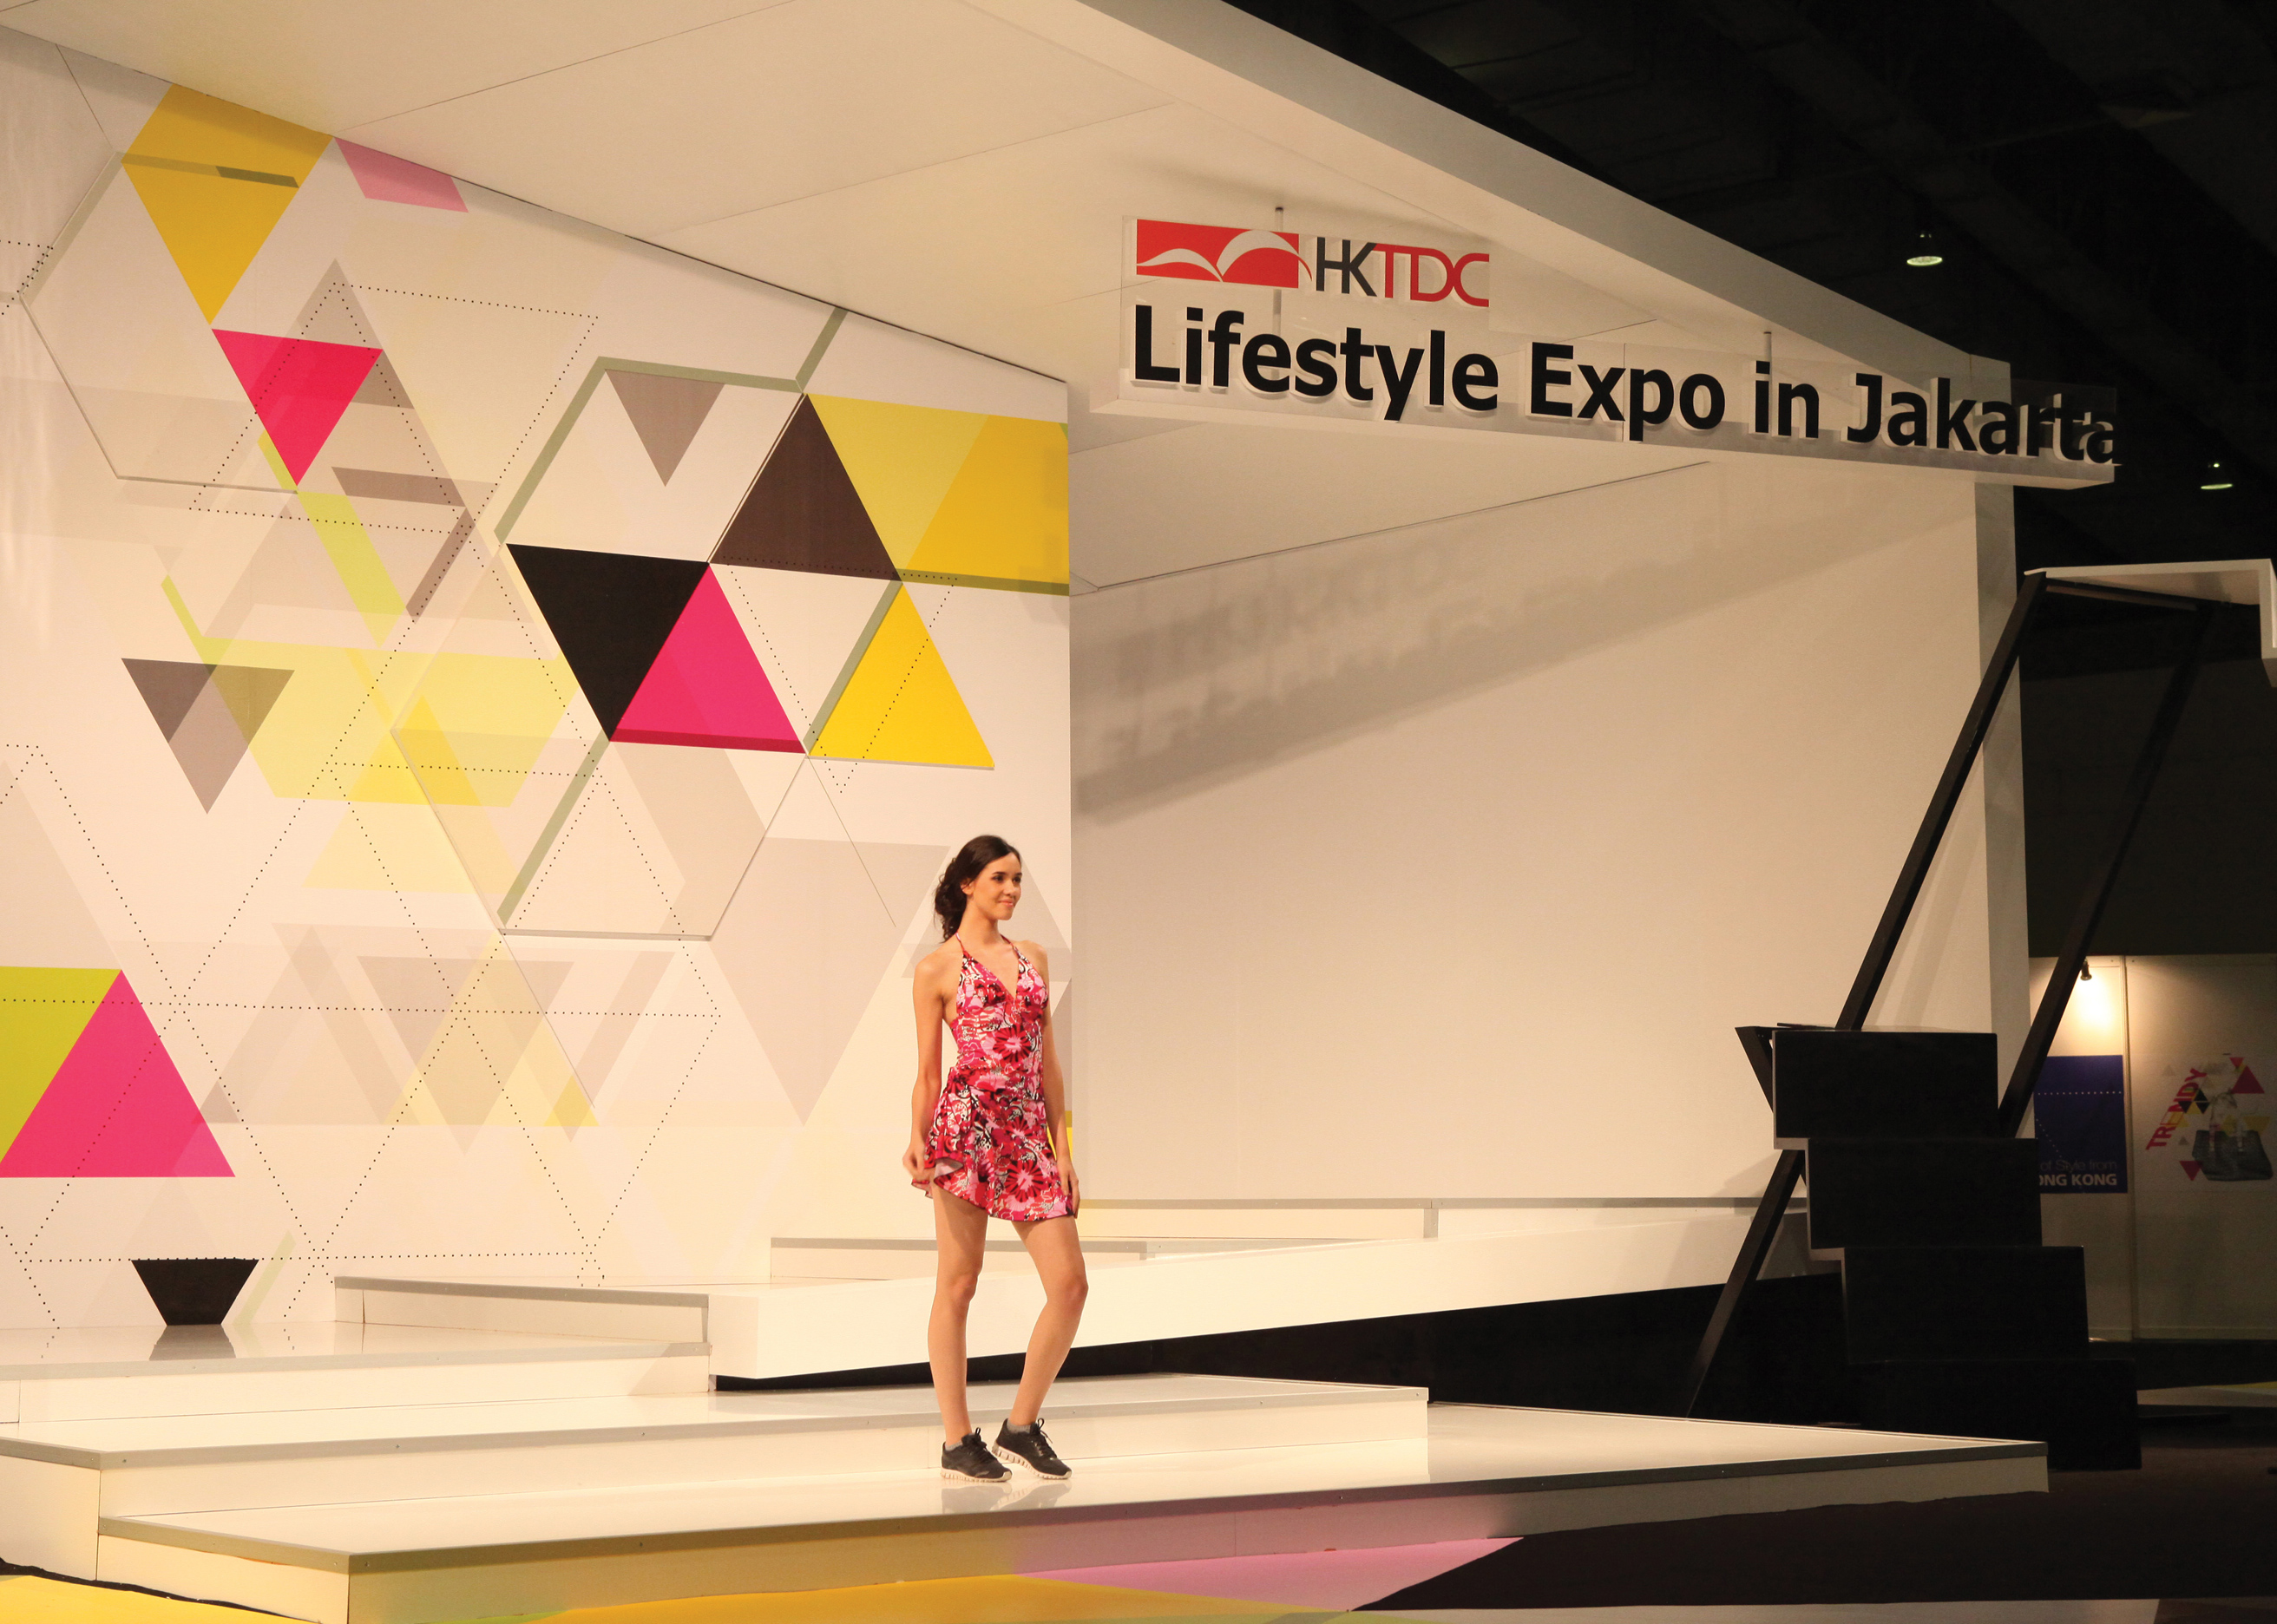 Lifestyle Expo in Jakarta